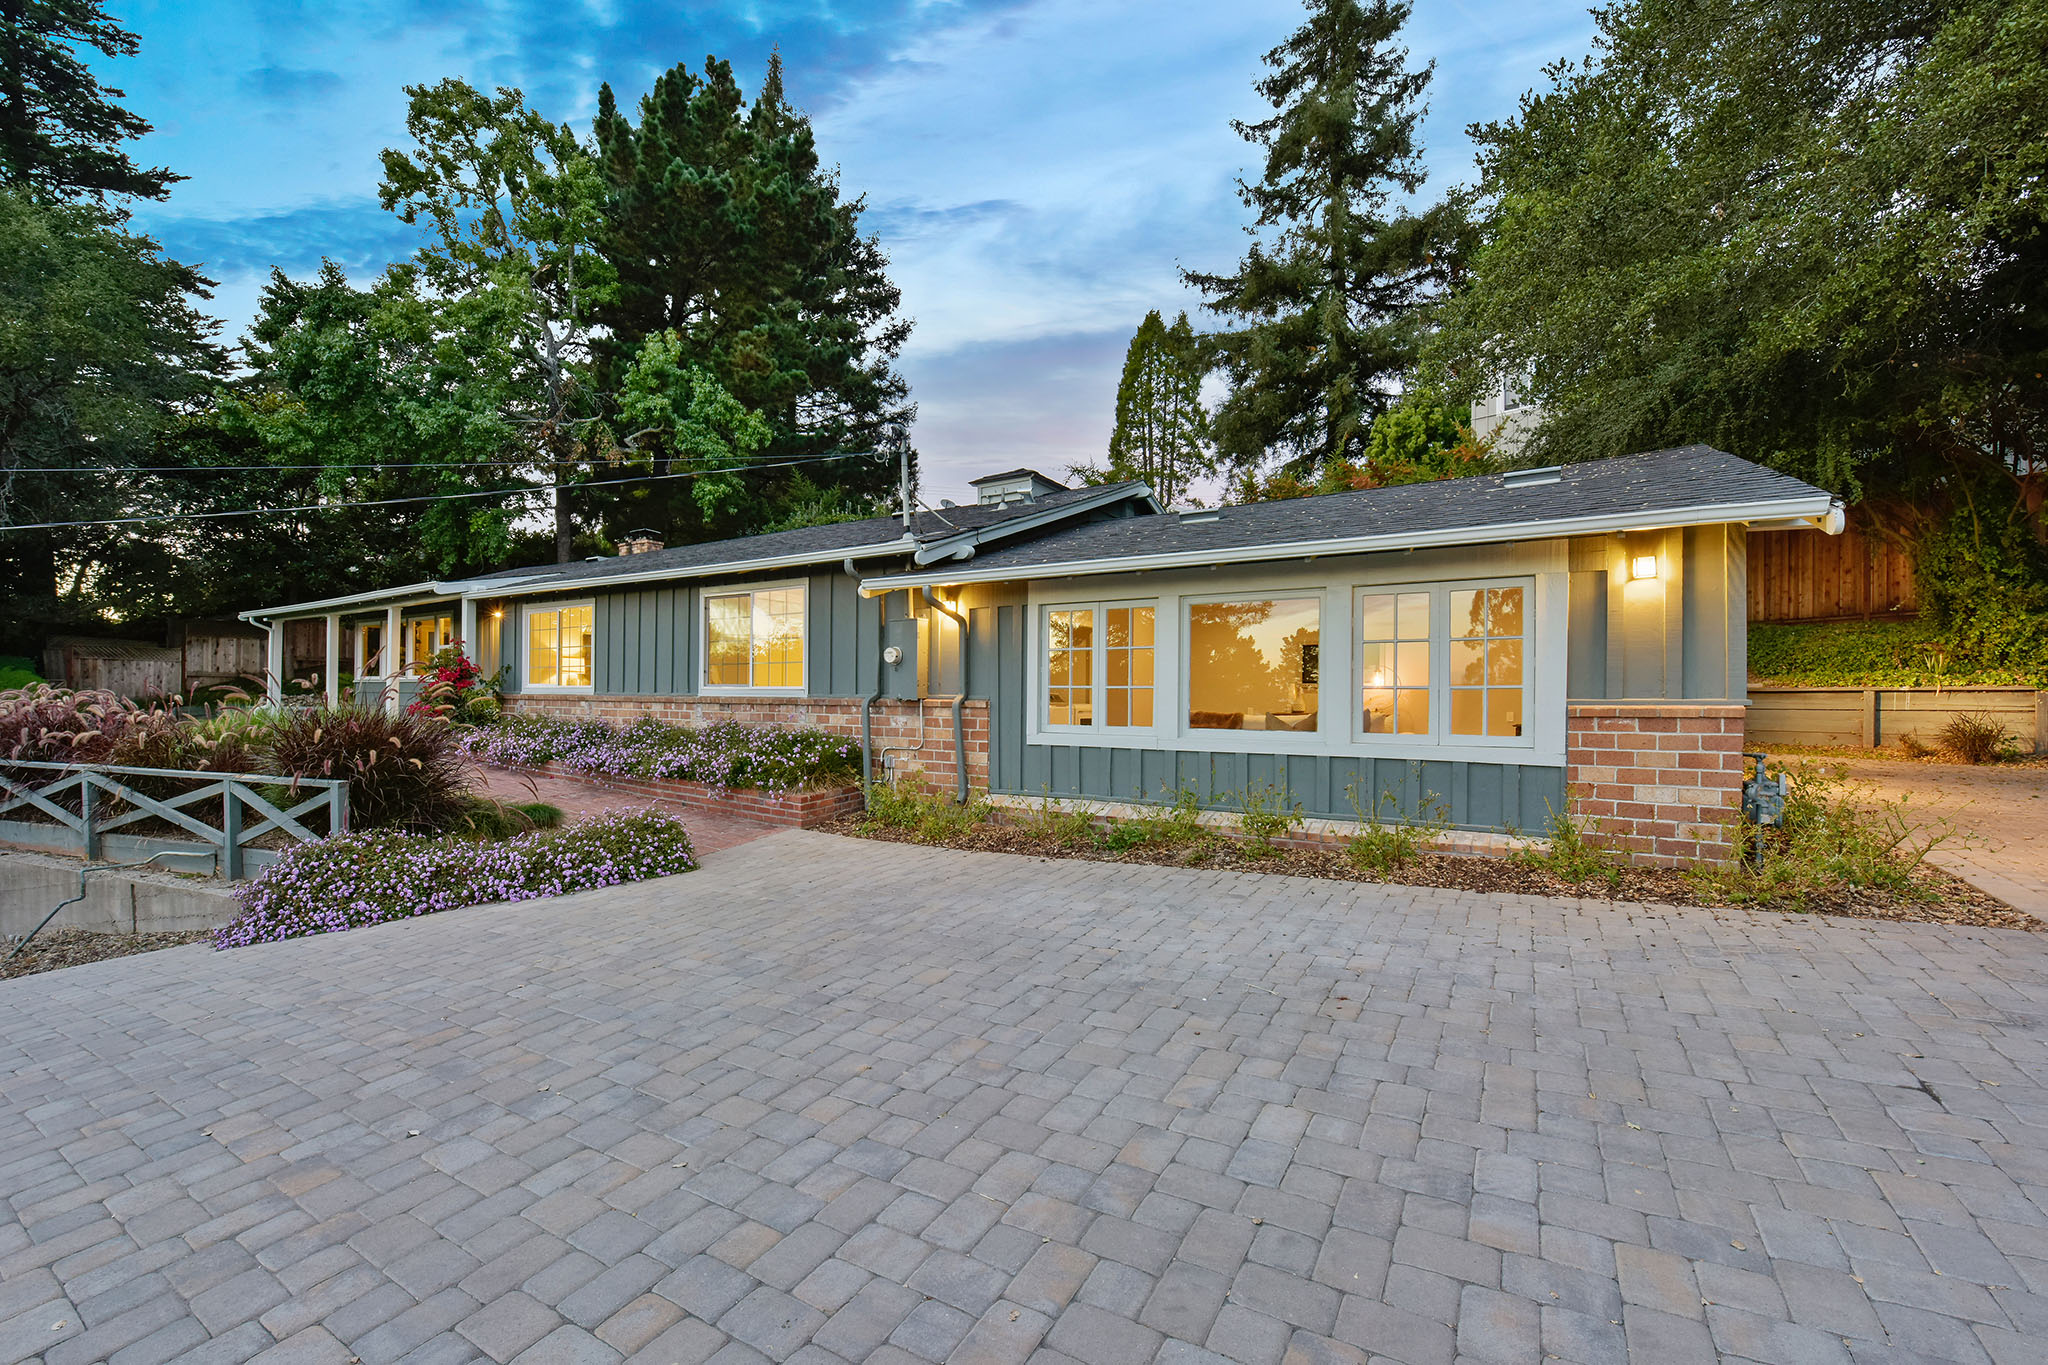 SOLD | 48 WEYBRIDGE CT, OAKLAND $1,625,000